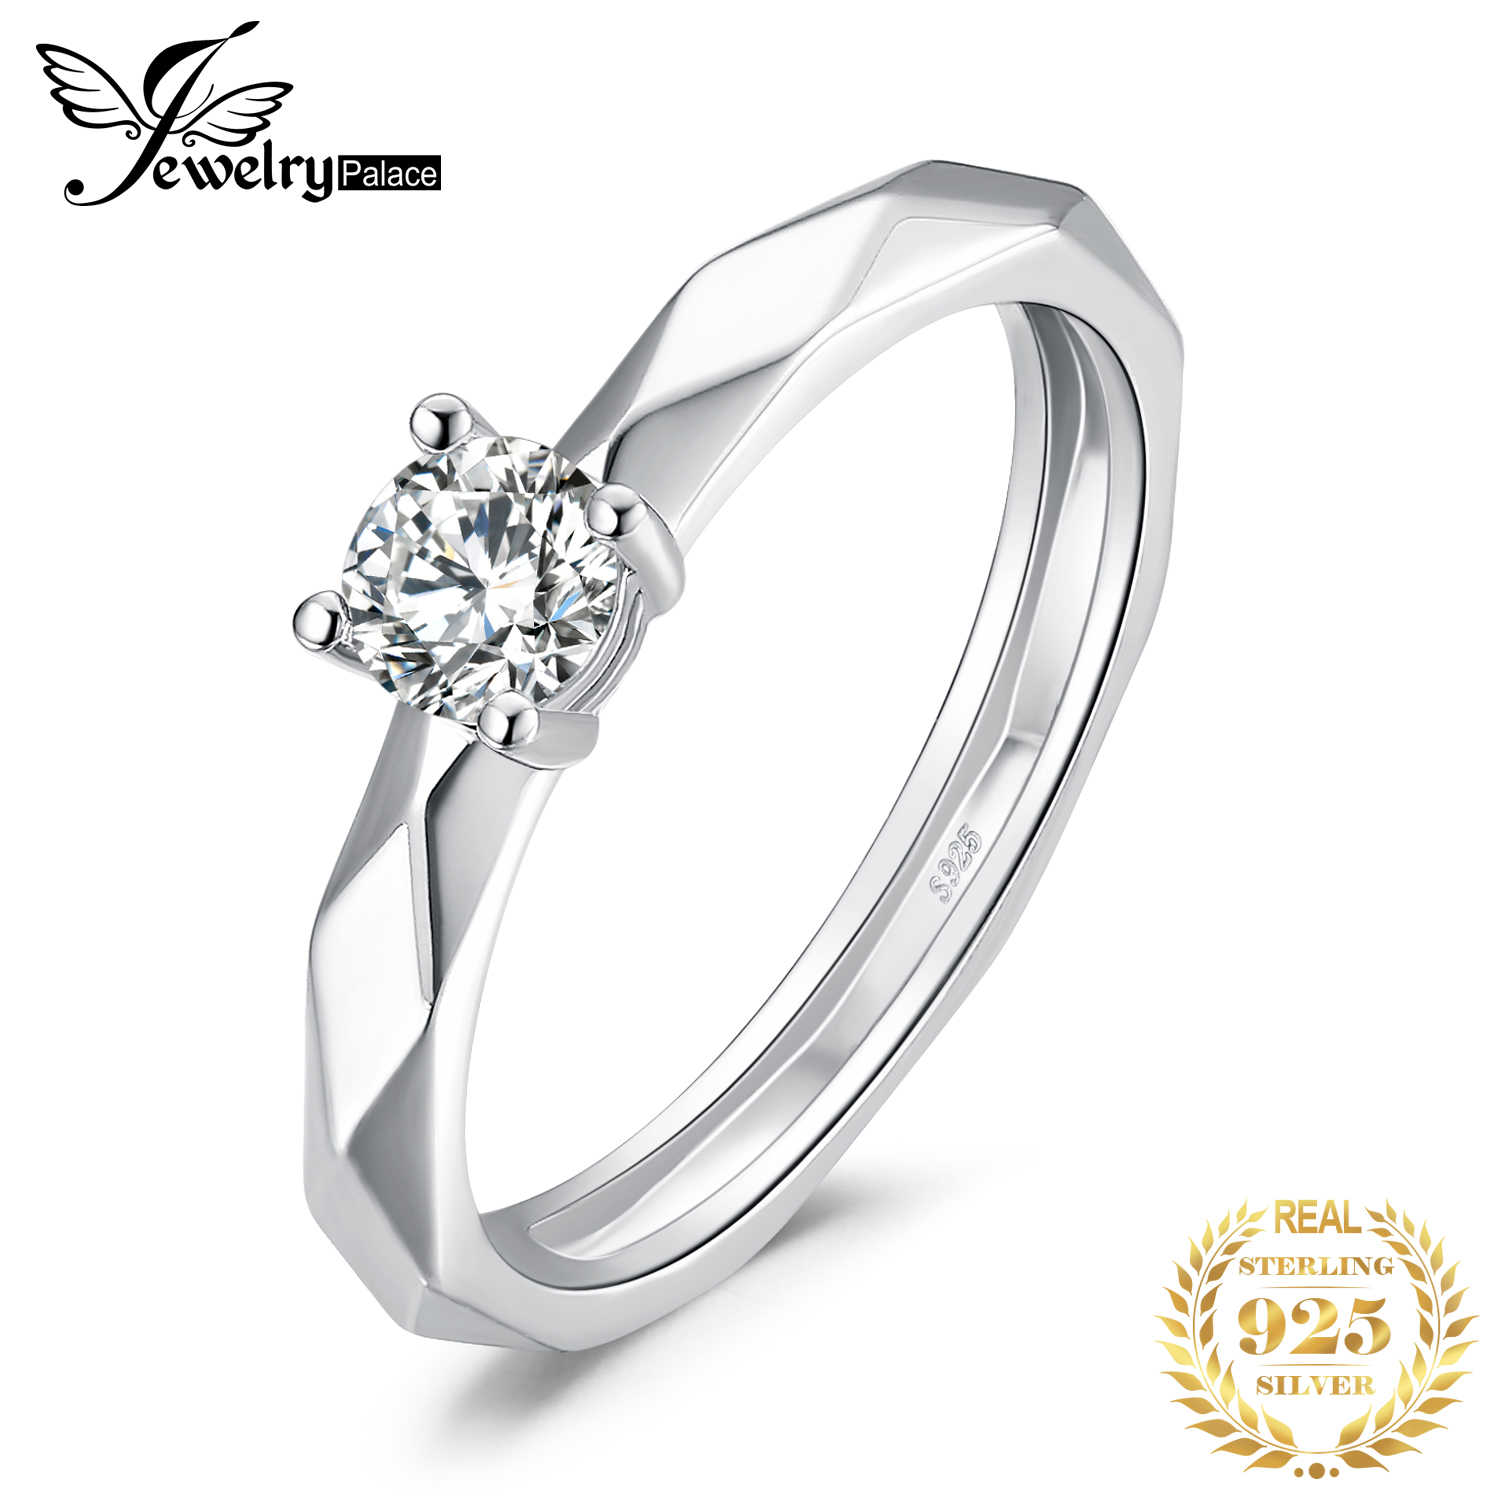 JewelryPalace Multi Faceted 0.6ct Cubic Zirconia สัญญาครบรอบ Solitaire หมั้นแหวน 925 เงินสเตอร์ลิง